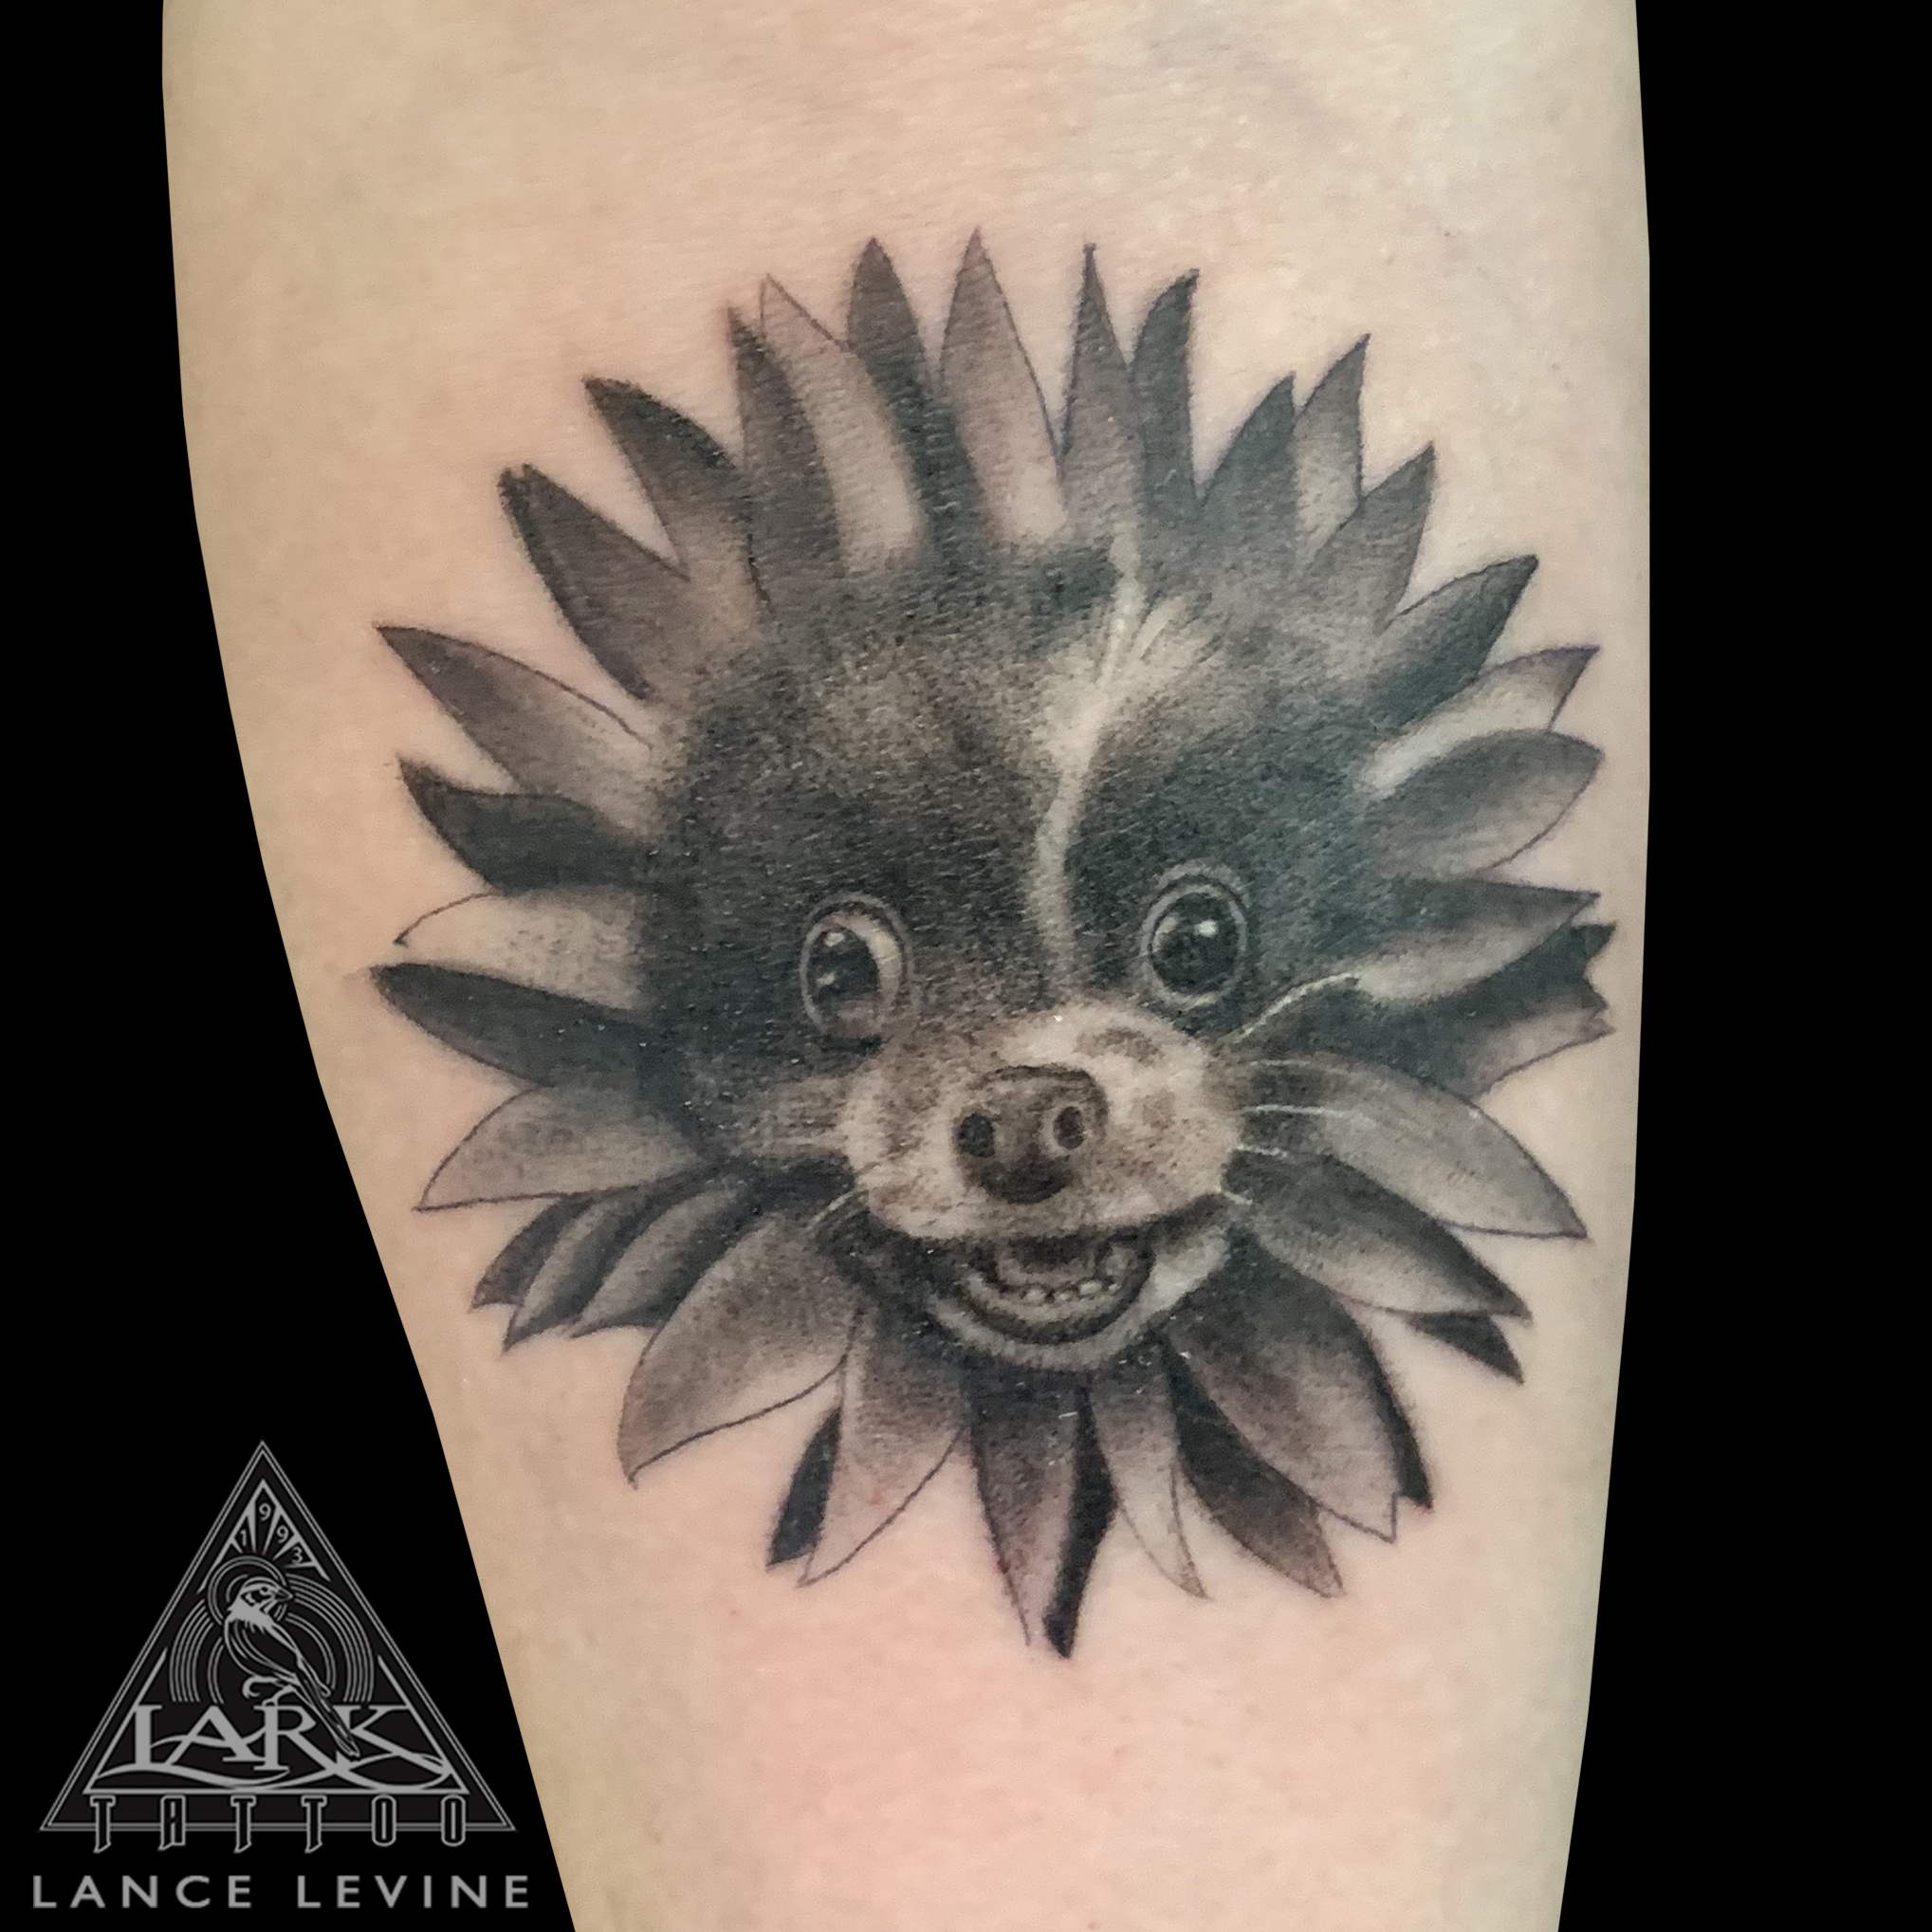 LarkTattoo, Tattoo, Tattoos, LongIslandTattooArtist, Tattooer, LongIslandTattooer, LongIslandTattoo , TattooArtist, Tattoist, BNG, BNGTattoo, BlackAndGrey, BlackAndGreyTattoo, BlackAndGray, BlackAndGrayTattoo, Pet, PetTattoo, Dog, DogTattoo, PeTattoo, Tribute, TributeTattoo, Memorial, MemorialTattoo, FurBaby, FurBabyTattoo, Flower, FlowerTattoo, Cute, CuteTattoo, PetPortrait, PetPortraitTattoo, Realism, RealismTattoo, Realistic, RealisticTattoo, TattooOfTheDay, Tat, Tats, Tatts, Tatted, Inked, Ink, TattooInk, AmazingInk, AmazingTattoo, BodyArt, LarkTattooWestbury, Westbury, LongIsland, NY, NewYork, USA, Art, Tattedup, InkedUp, LarkTattoos